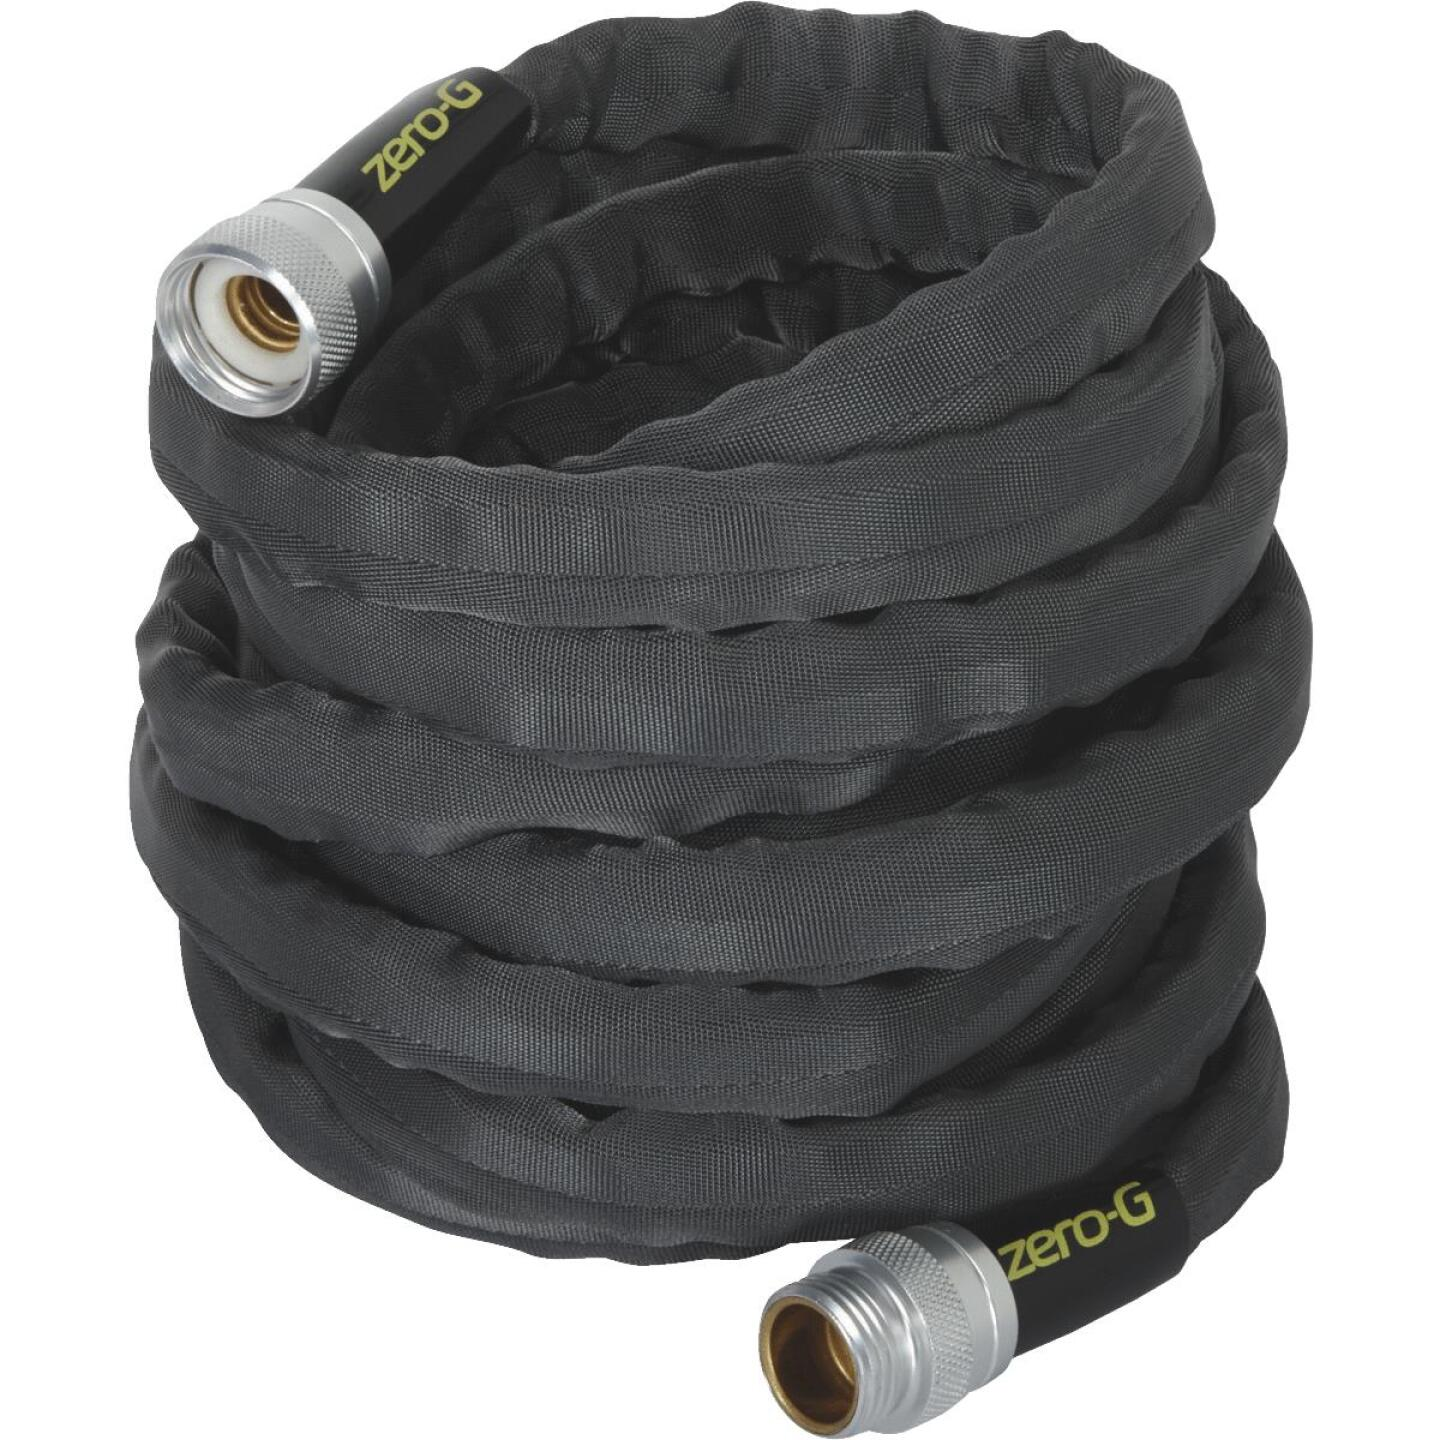 Apex Zero-G 5/8 In. Dia. x 25 Ft. L. Drinking Water Safe Garden Hose Image 4